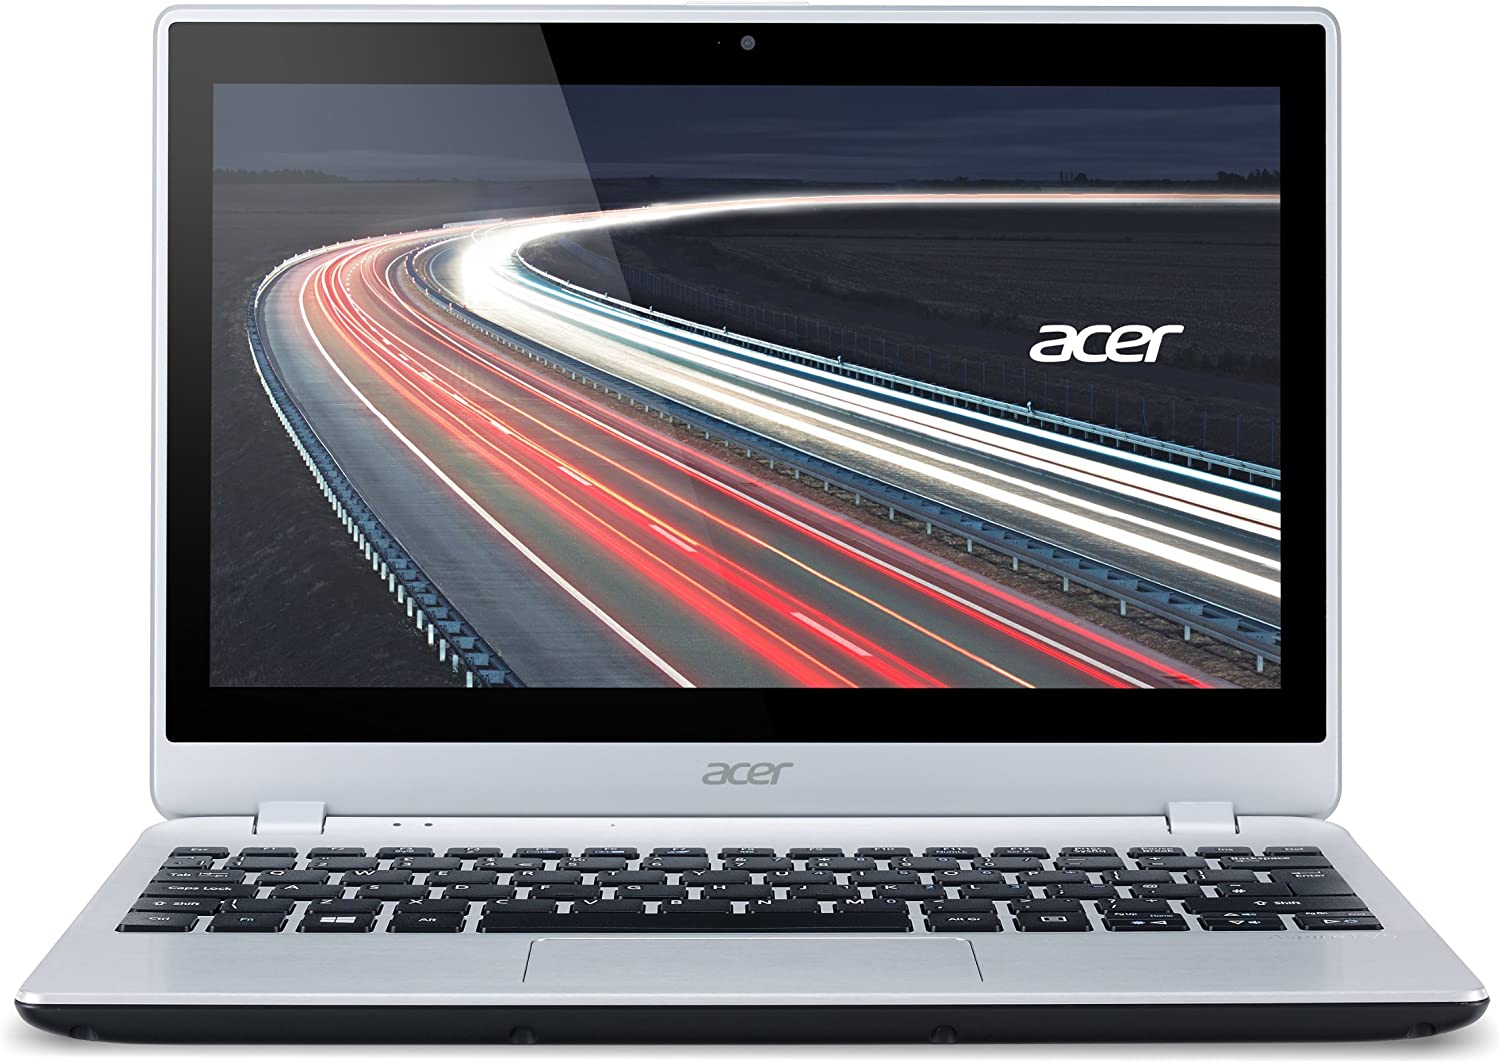 Acer Aspire V5-122P-0857 12-Inch Touchscreen Laptop (1 GHz A4-1250 A-Series processor, 4GB Ram, 500GB Hard Drive) Chill Silver (Renewed)